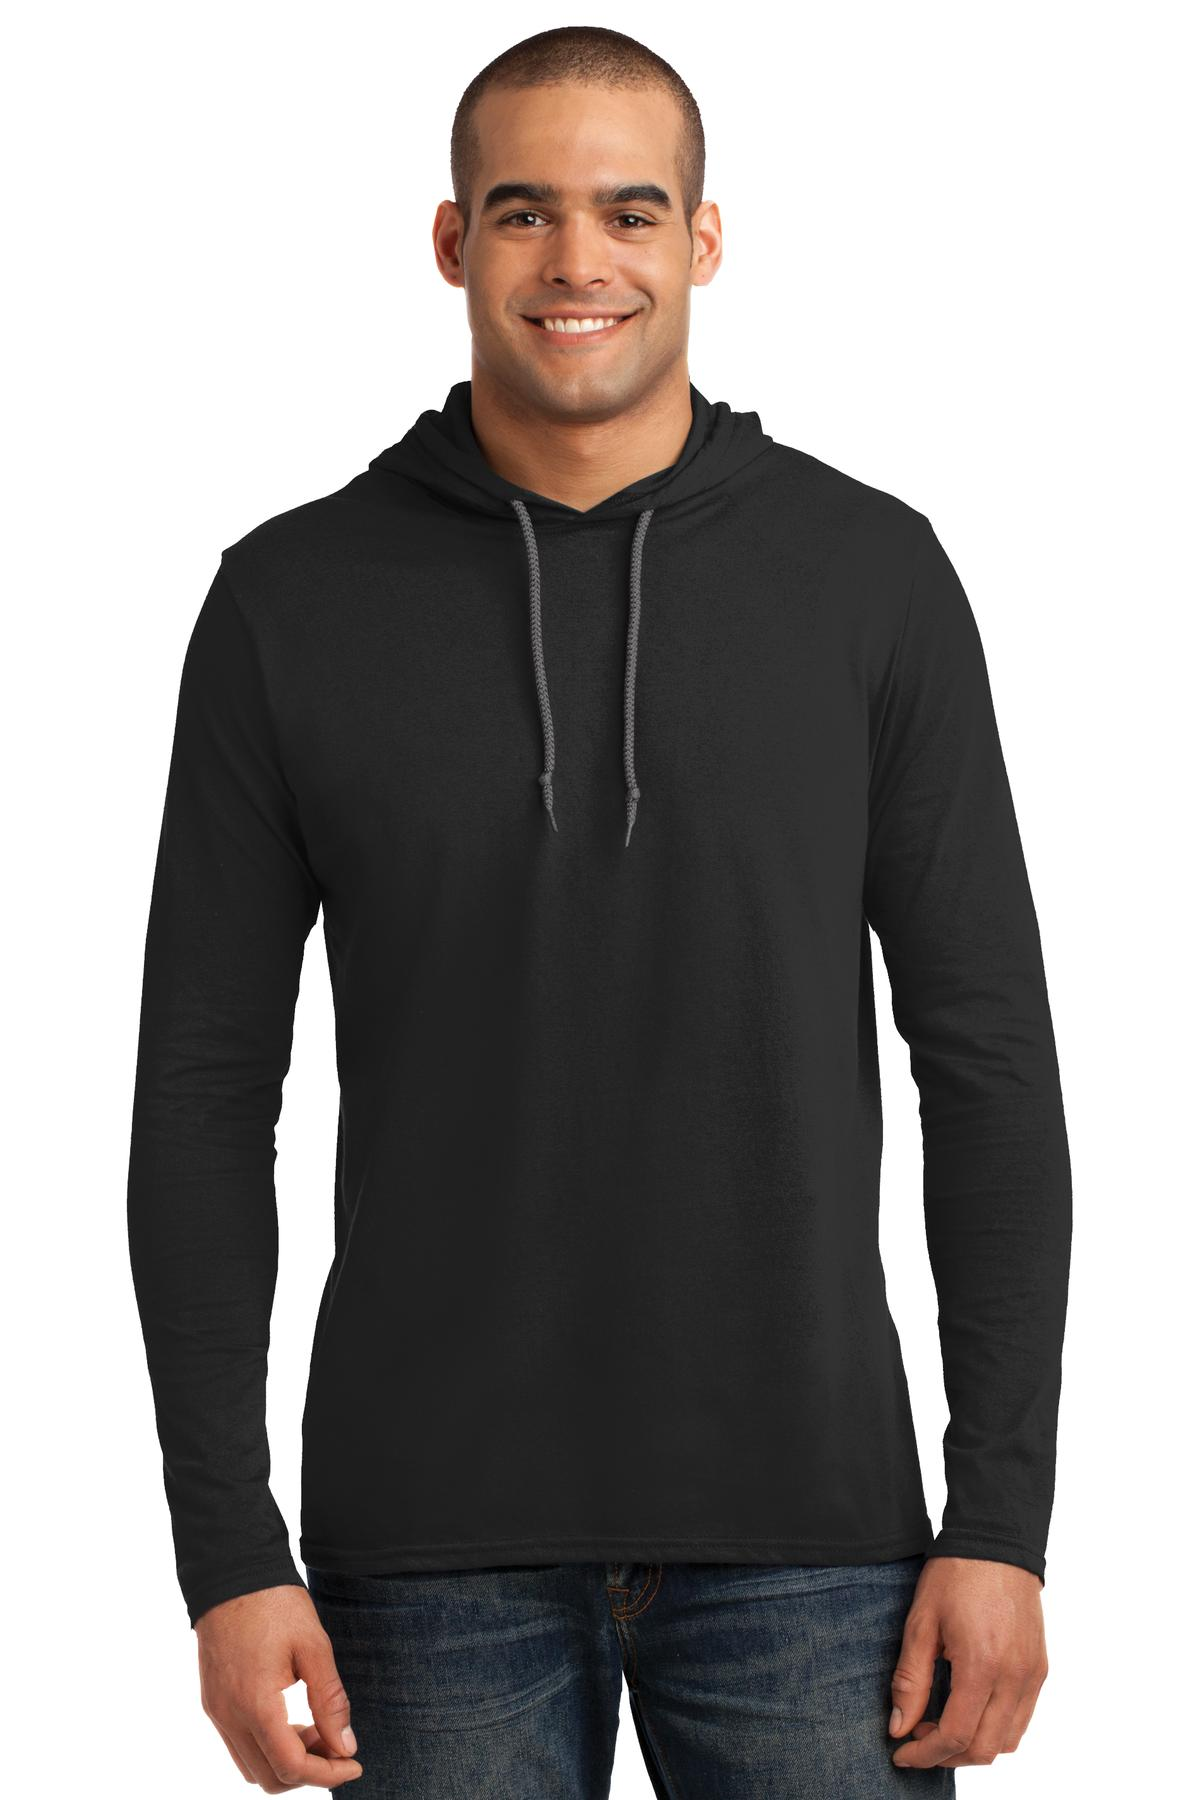 Anvil ®  100% Combed Ring Spun Cotton Long Sleeve Hooded T-Shirt. 987 - Black/ Dark Grey